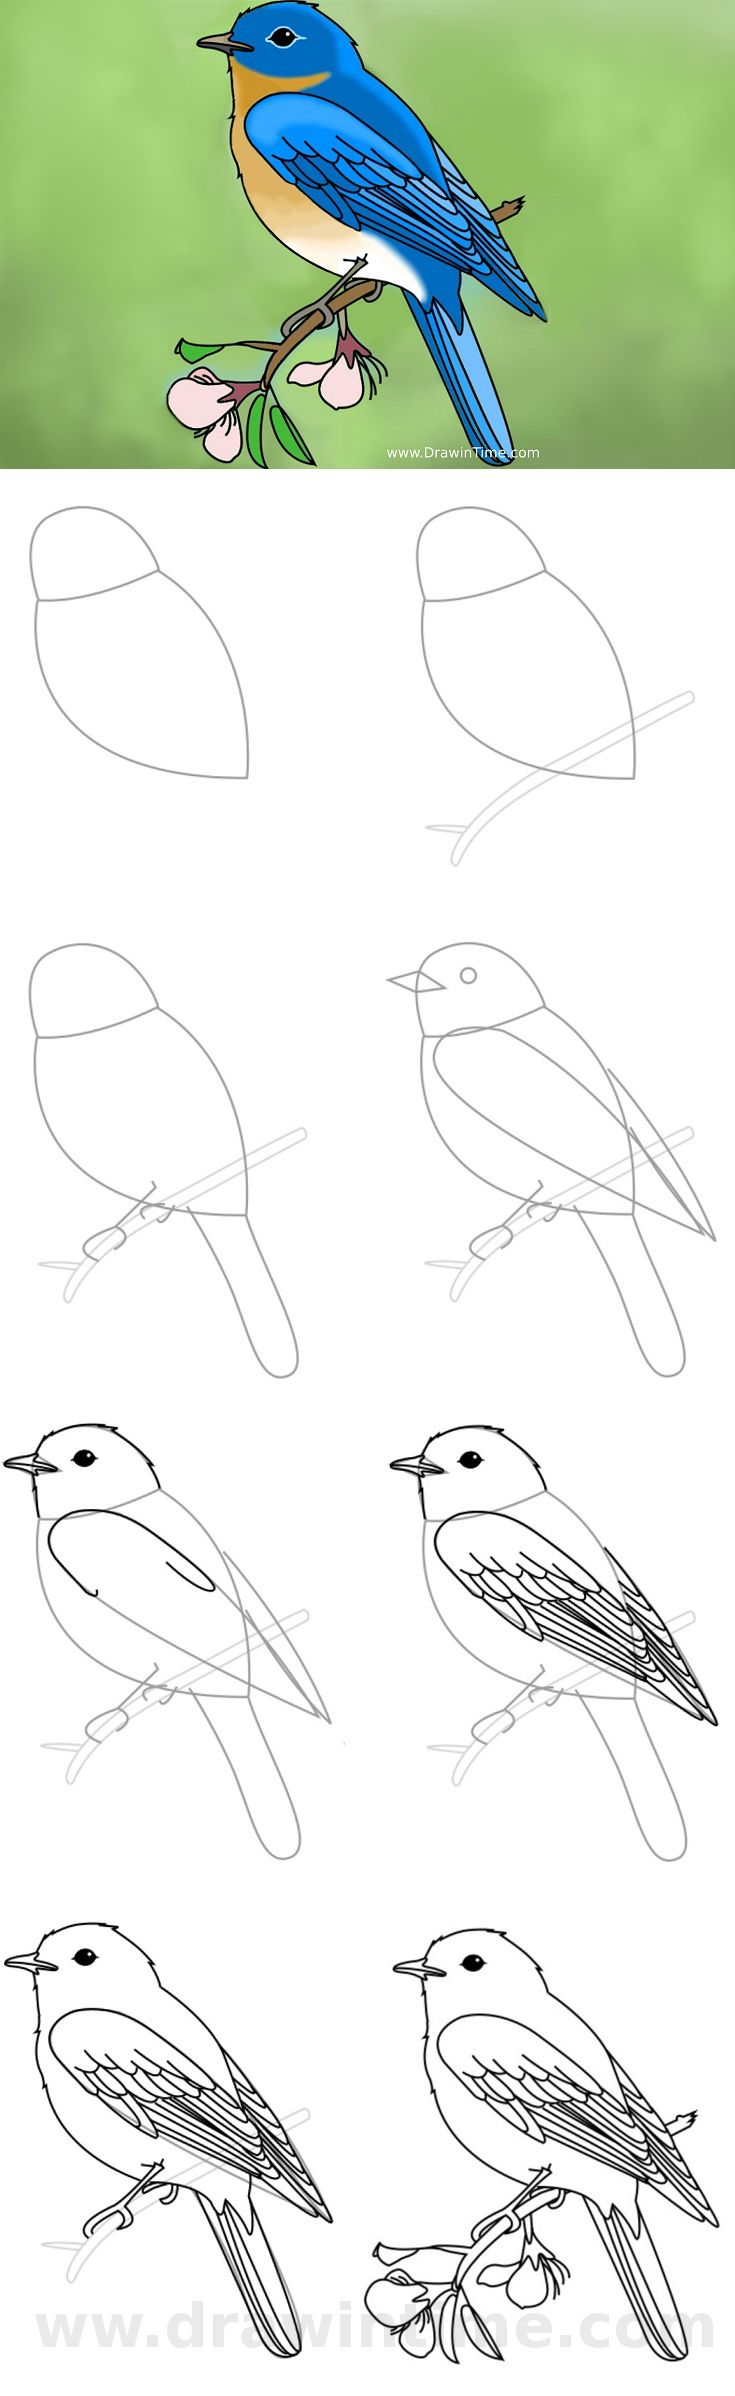 Tutorial: How to Draw a Bird EASY  http://drawintime.com/how-to-draw-a-bird/